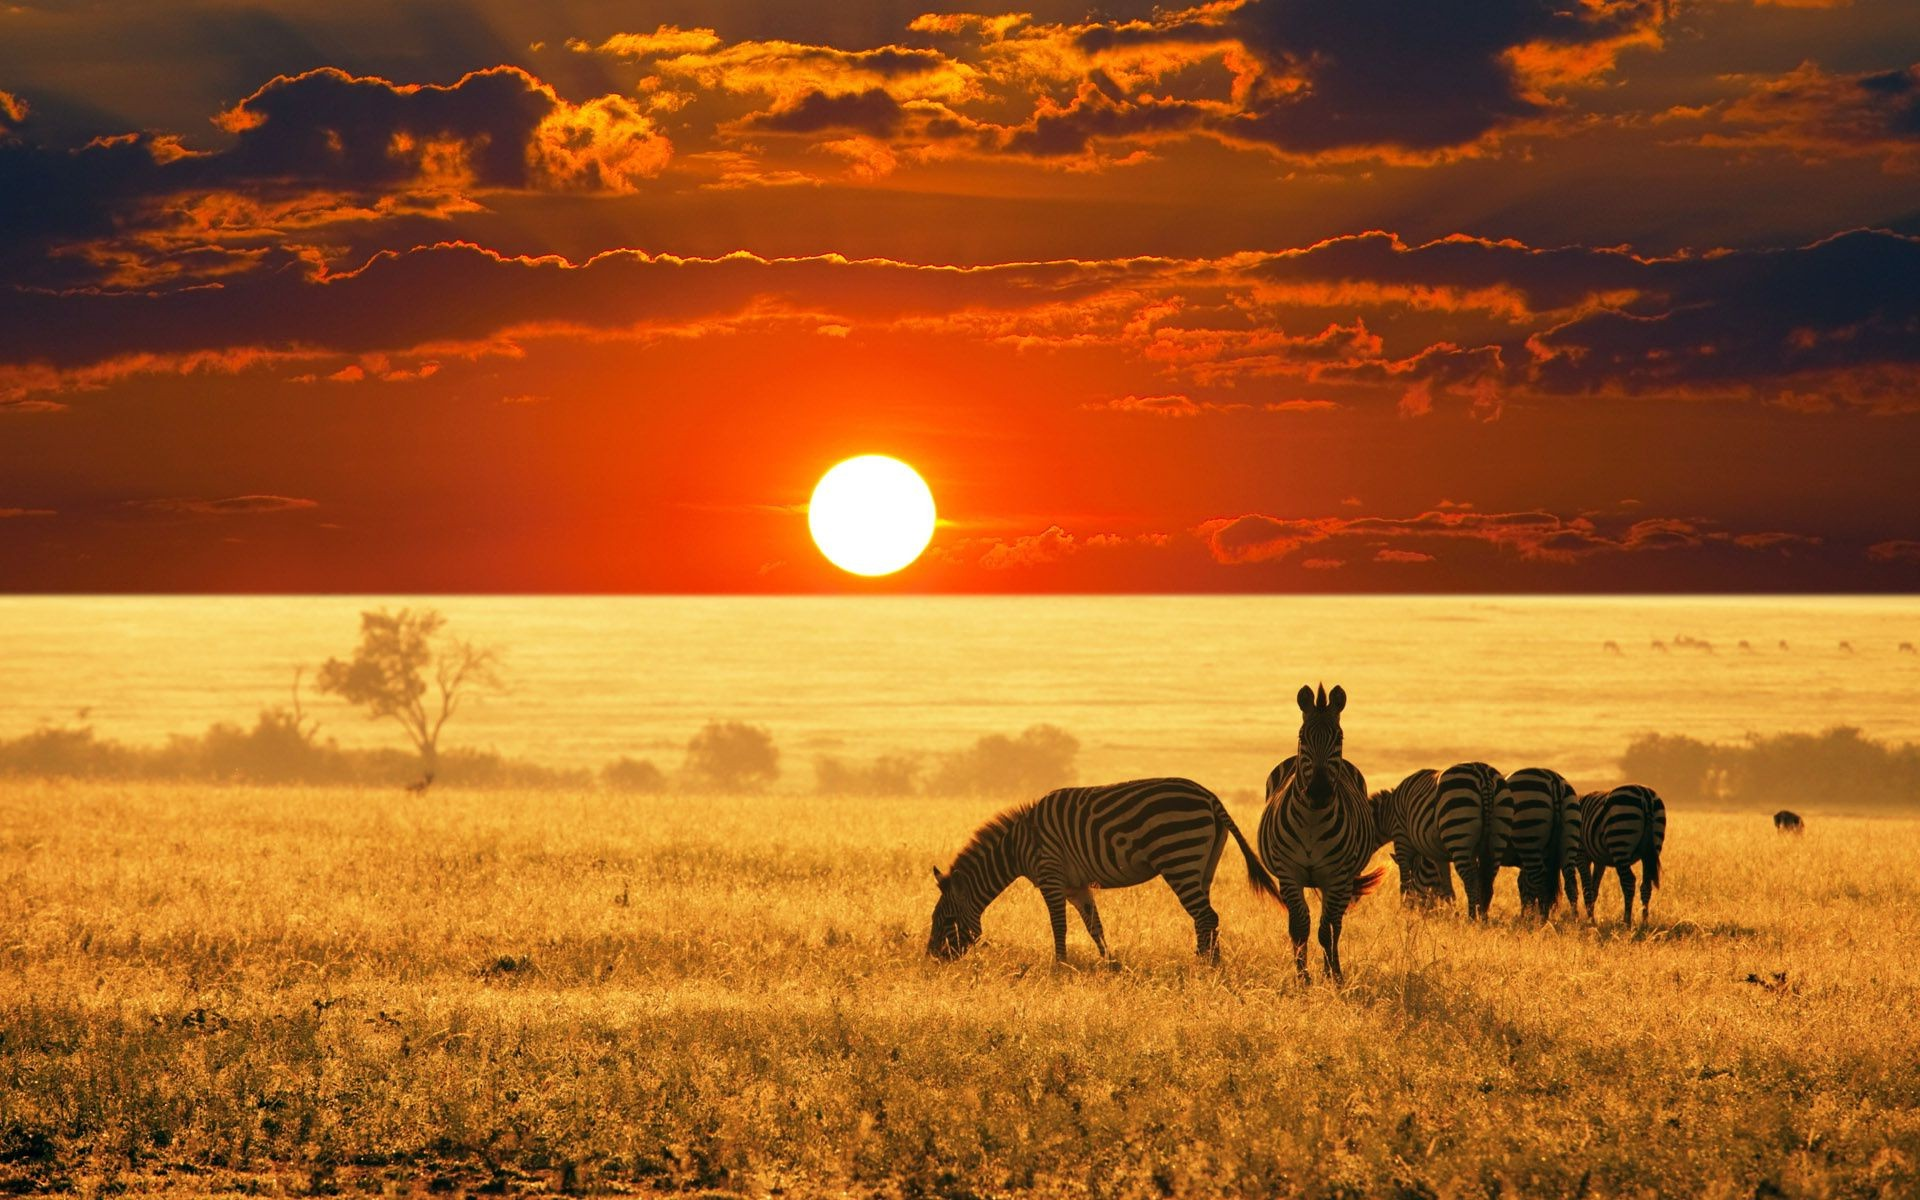 Zebras in Africa at the background of sunset